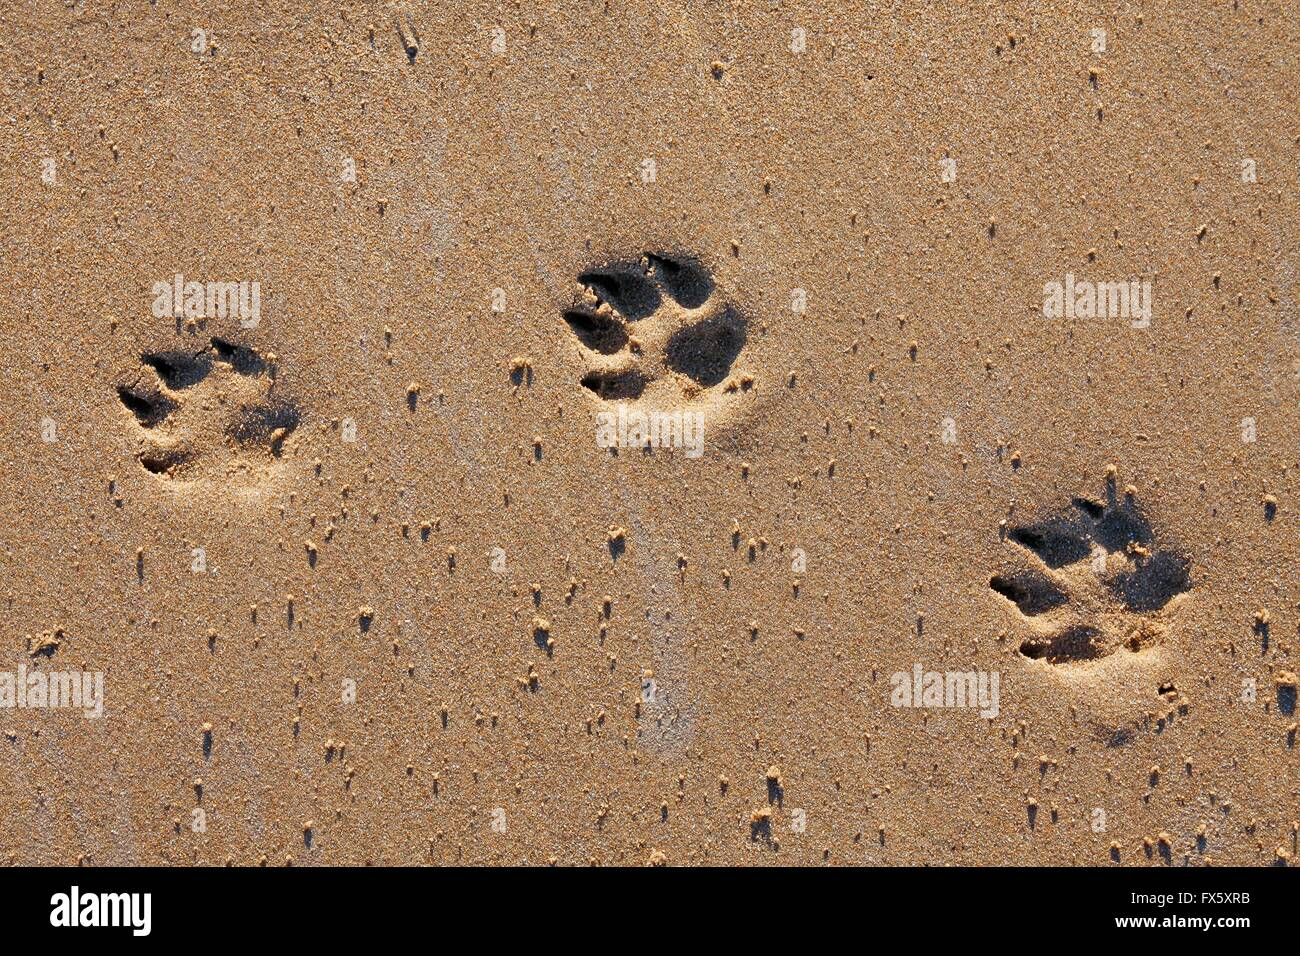 Animal footprints in the sand - Stock Image